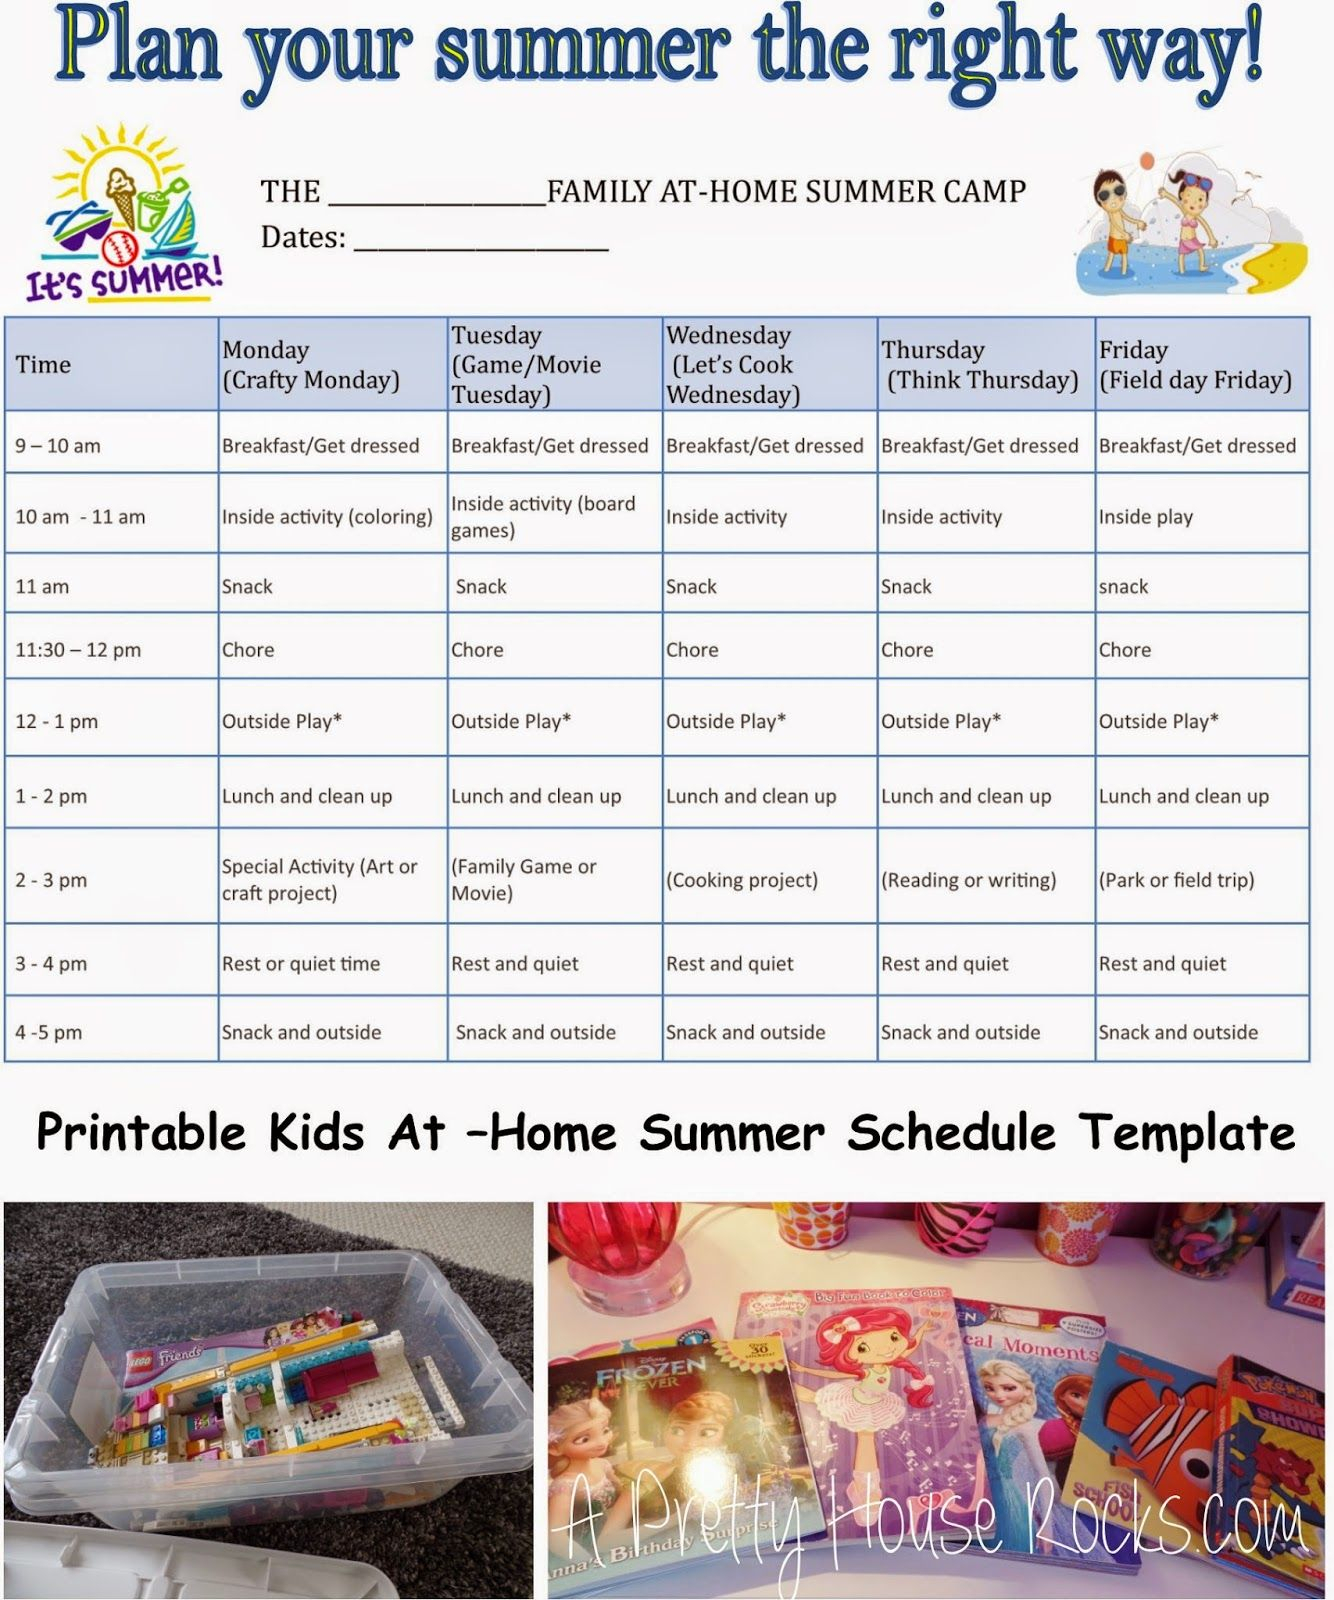 Kids At-Home Summer Camp Schedule - Printable Template - A